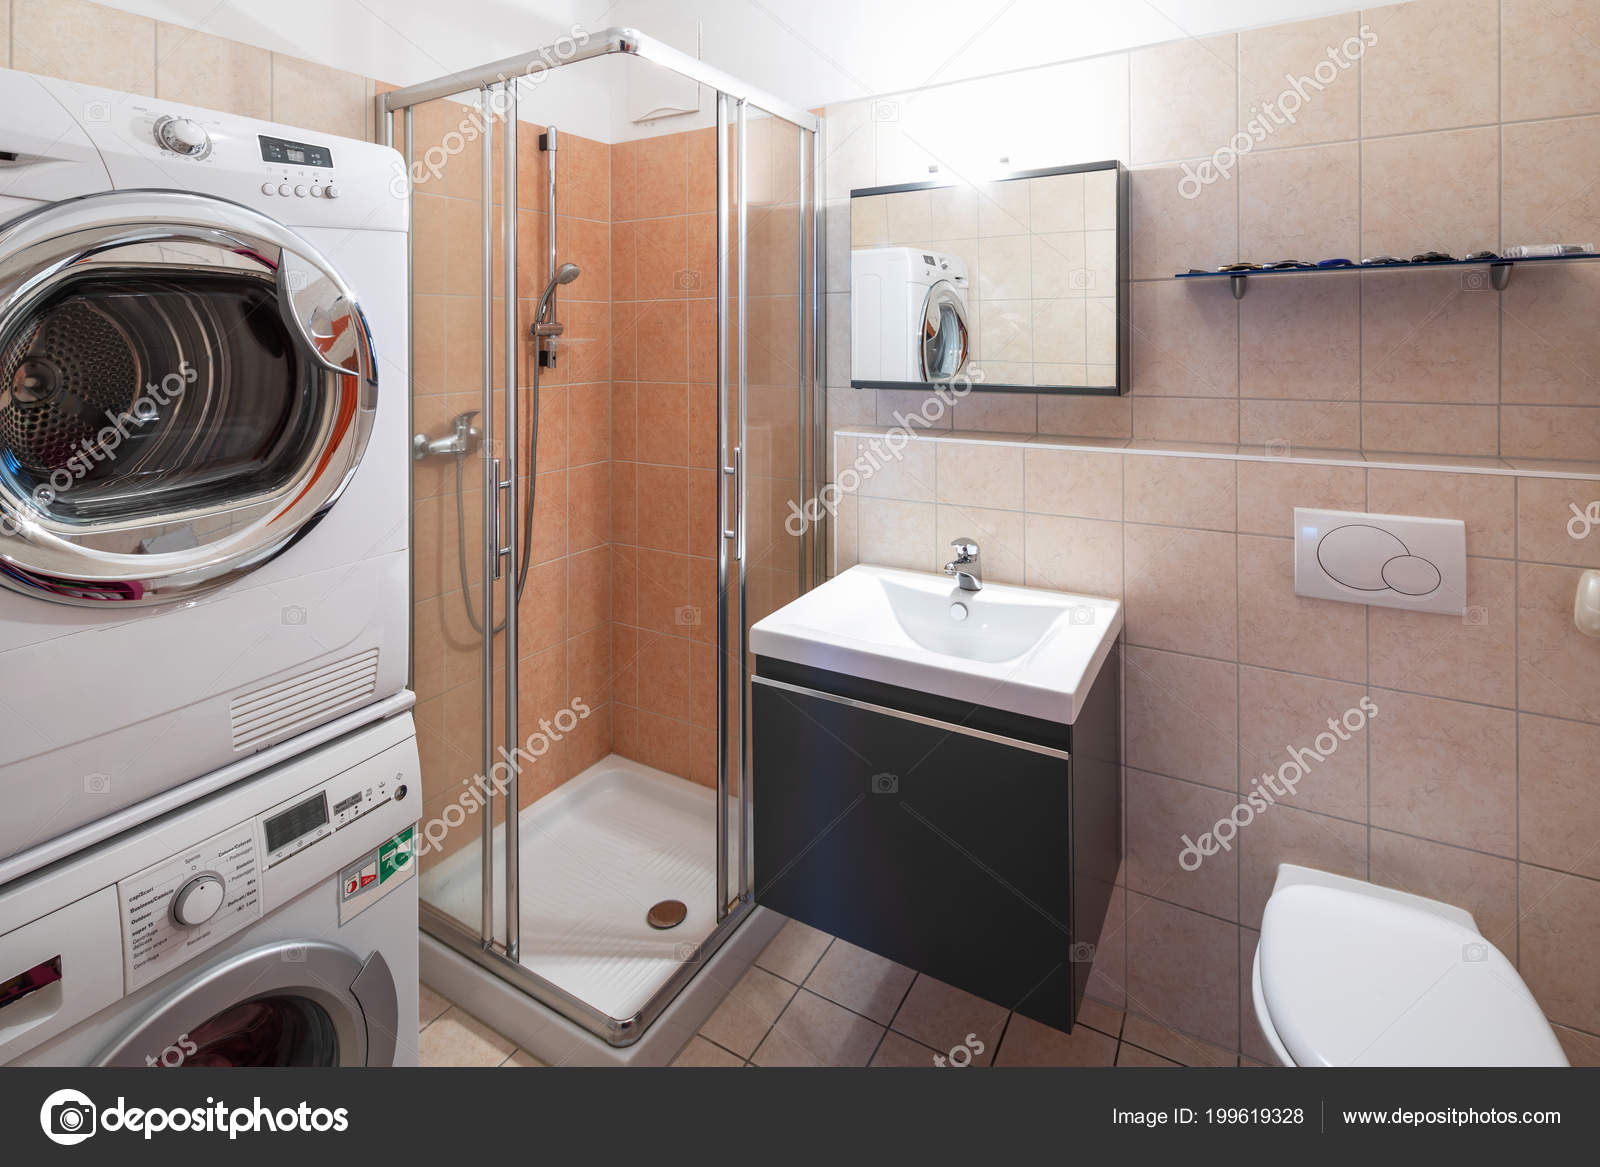 Salle De Bain Avec Machine À Laver Et Seche Linge modern bathroom tile shower washing machine dryer nobody